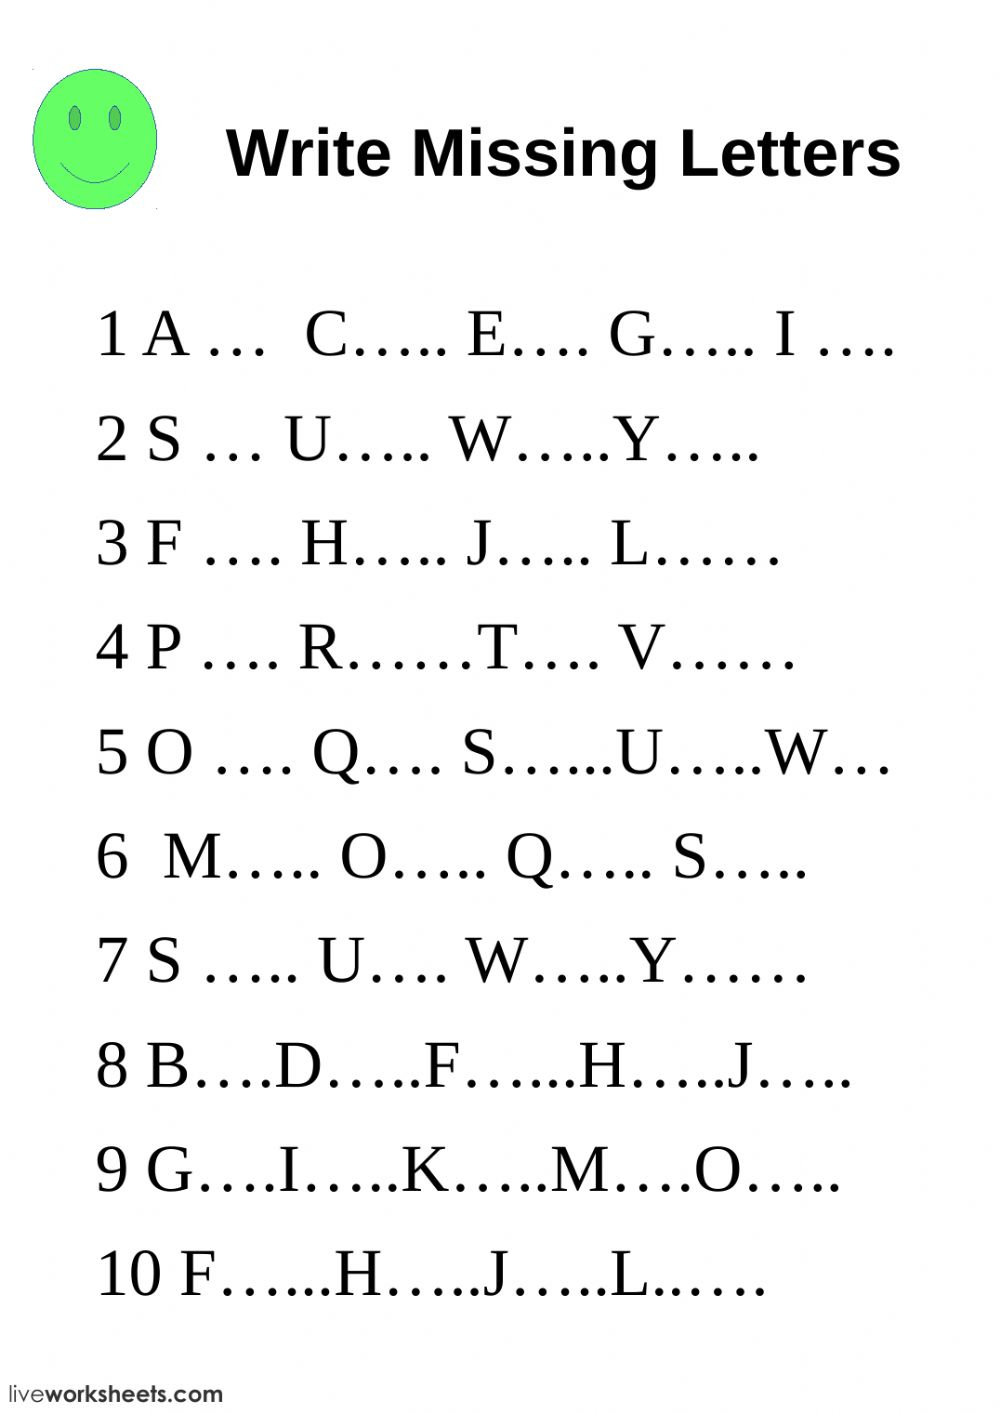 Write Missing Letters - Interactive Worksheet throughout Letter S Worksheets